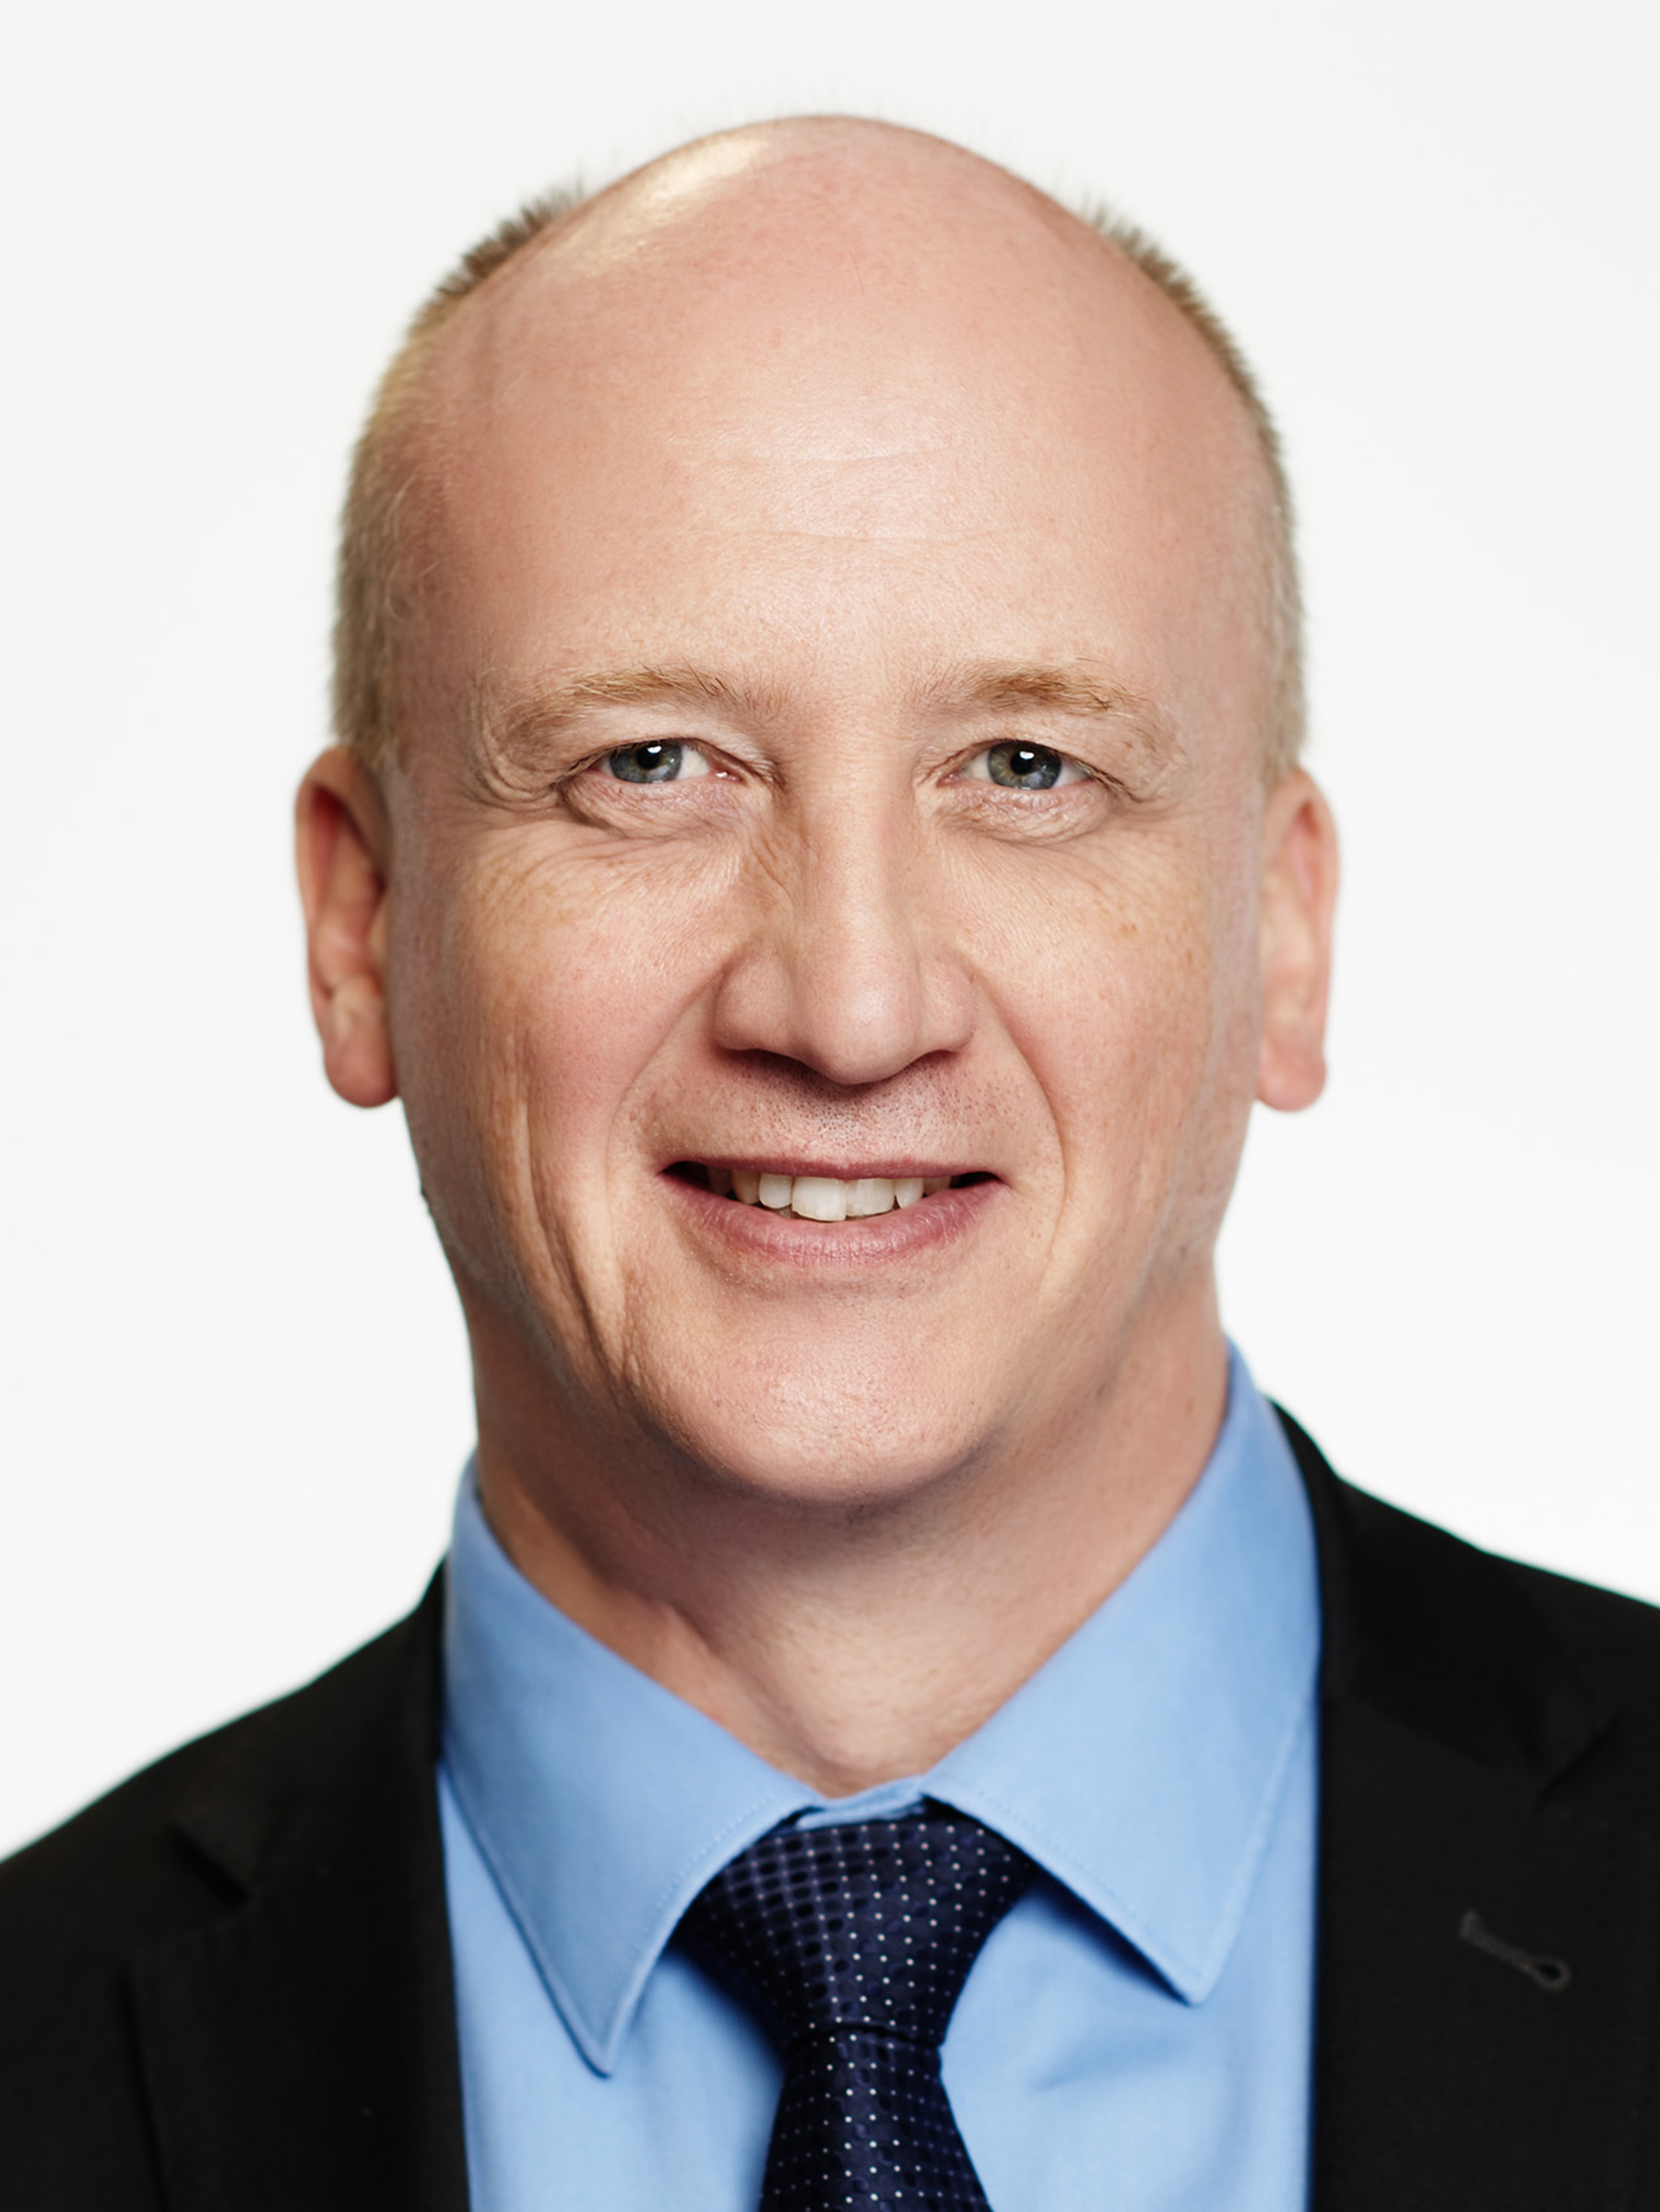 Portrait Of Poul Bottern, CEO Of IntoWork Australia And Board Member | Interact Australia Team